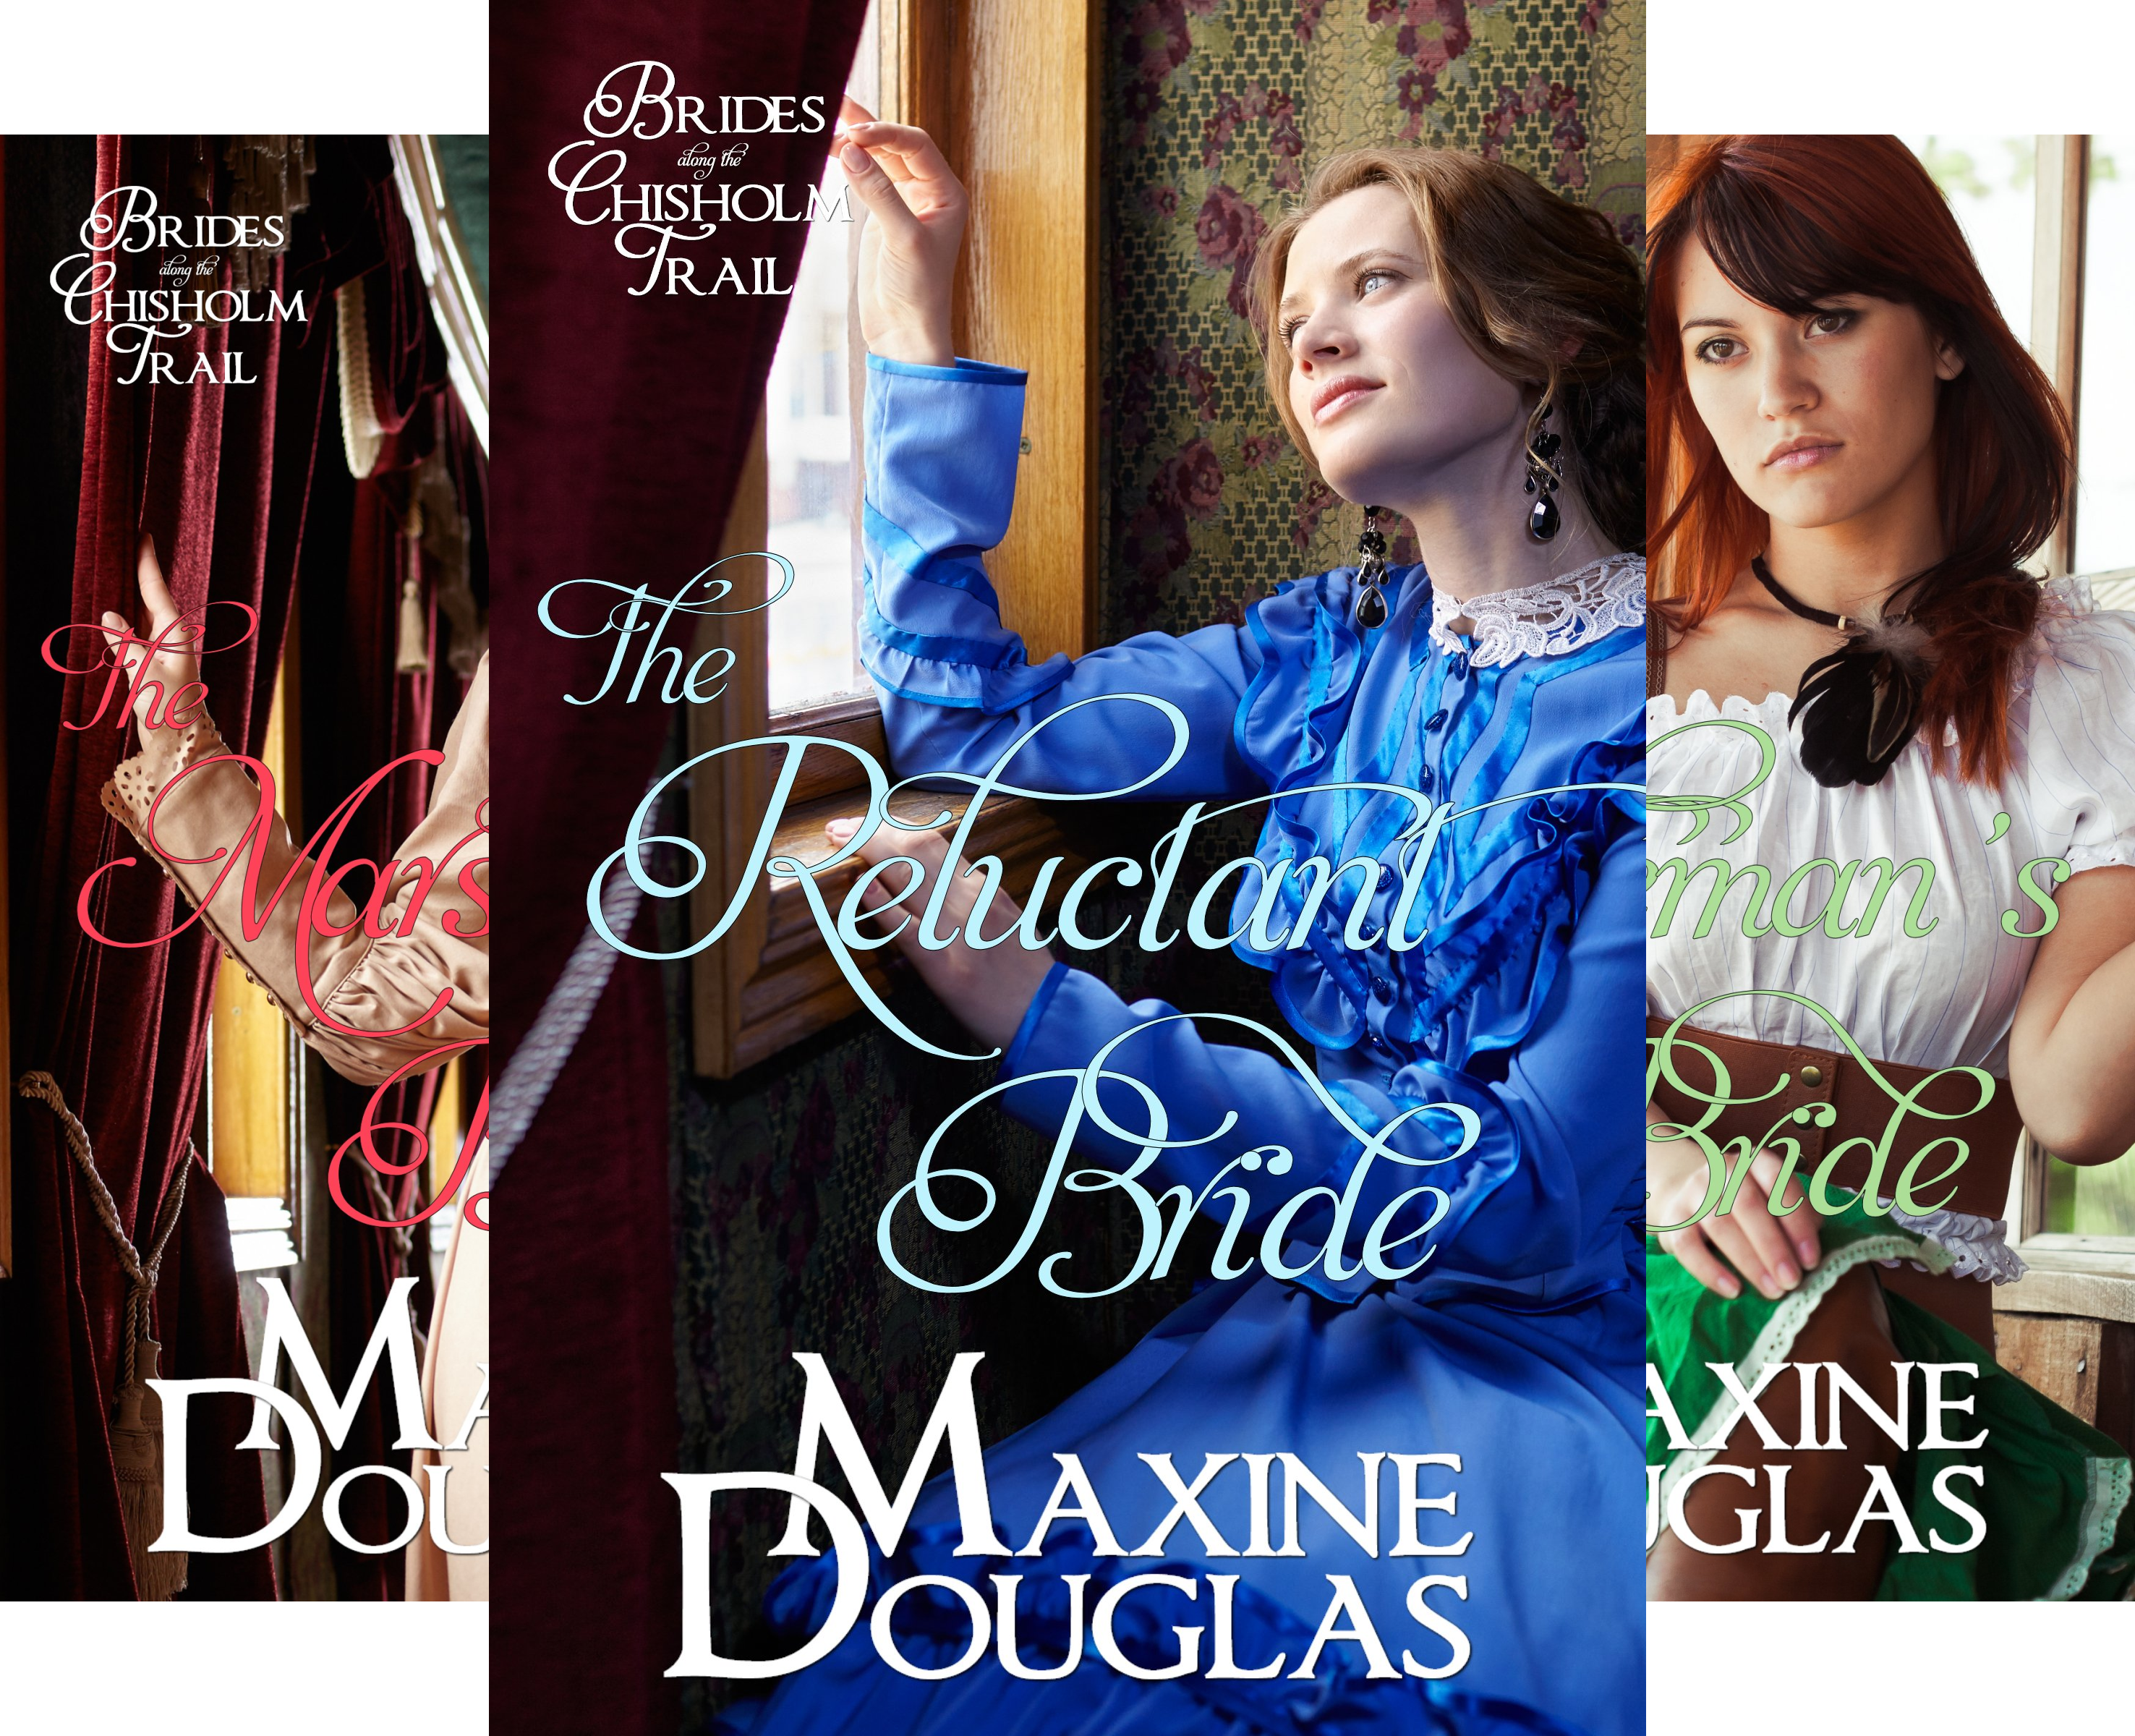 Brides Along the Chisholm Trail (3 Book Series)